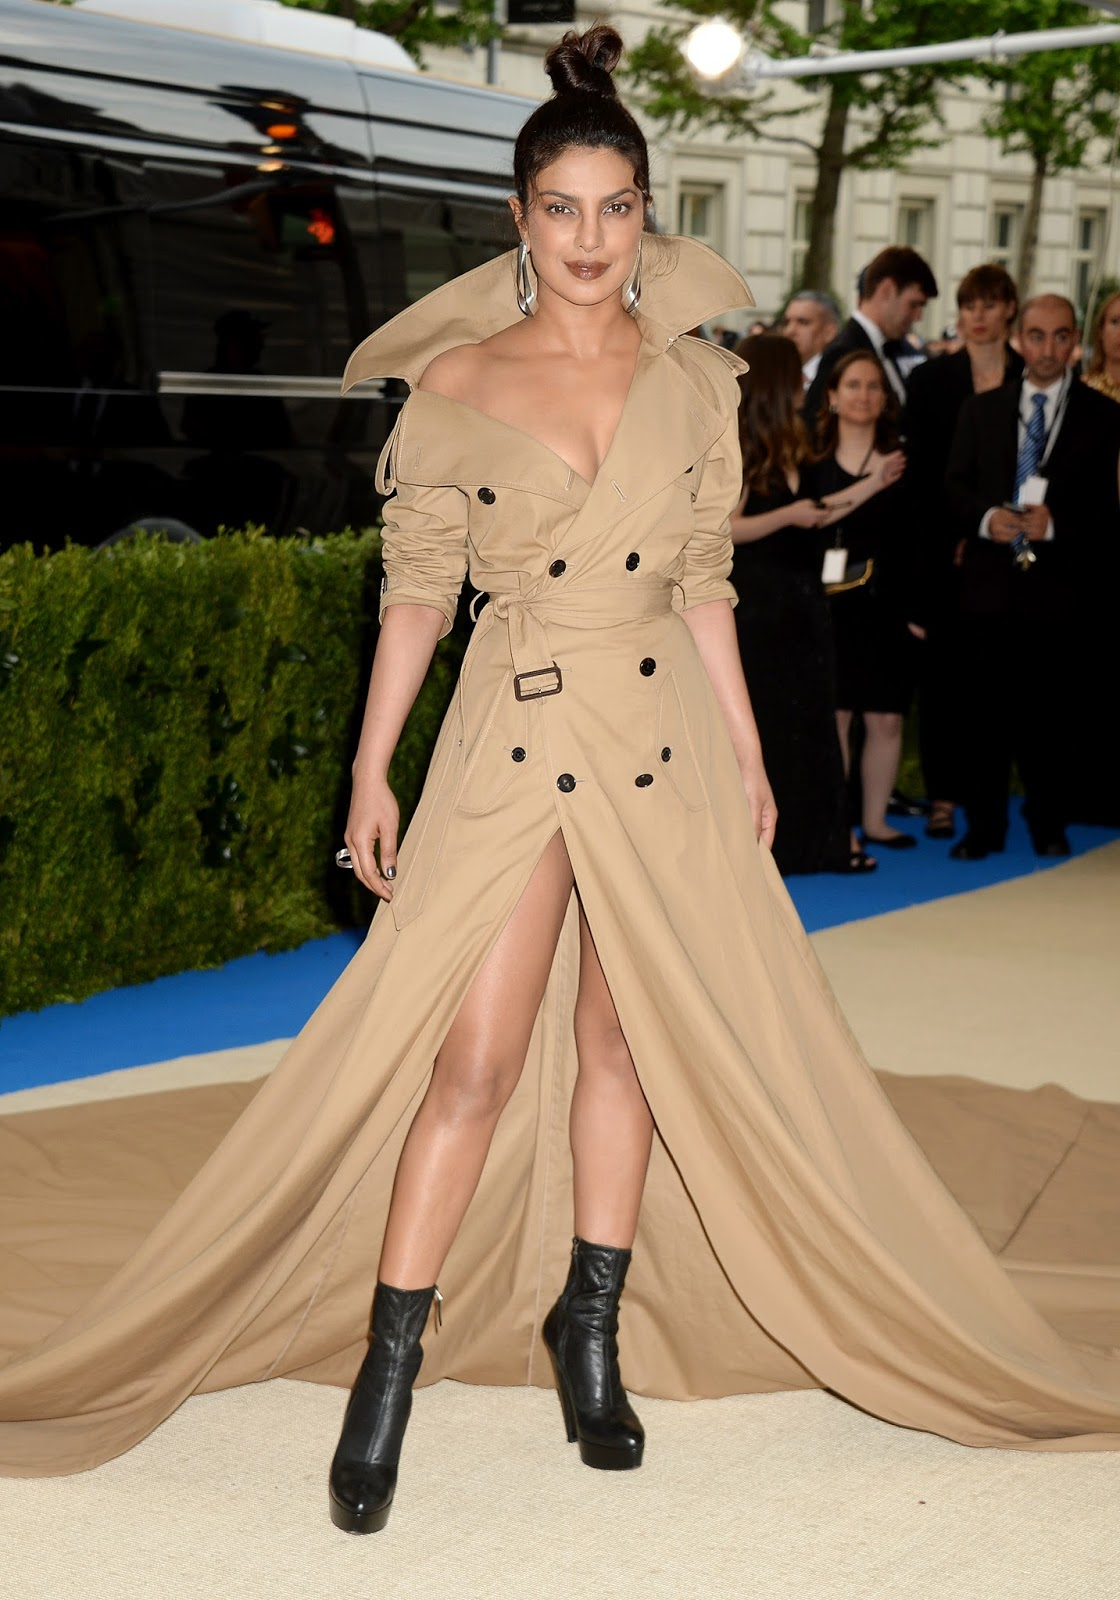 Priyanka Chopra at Met Gala 2017